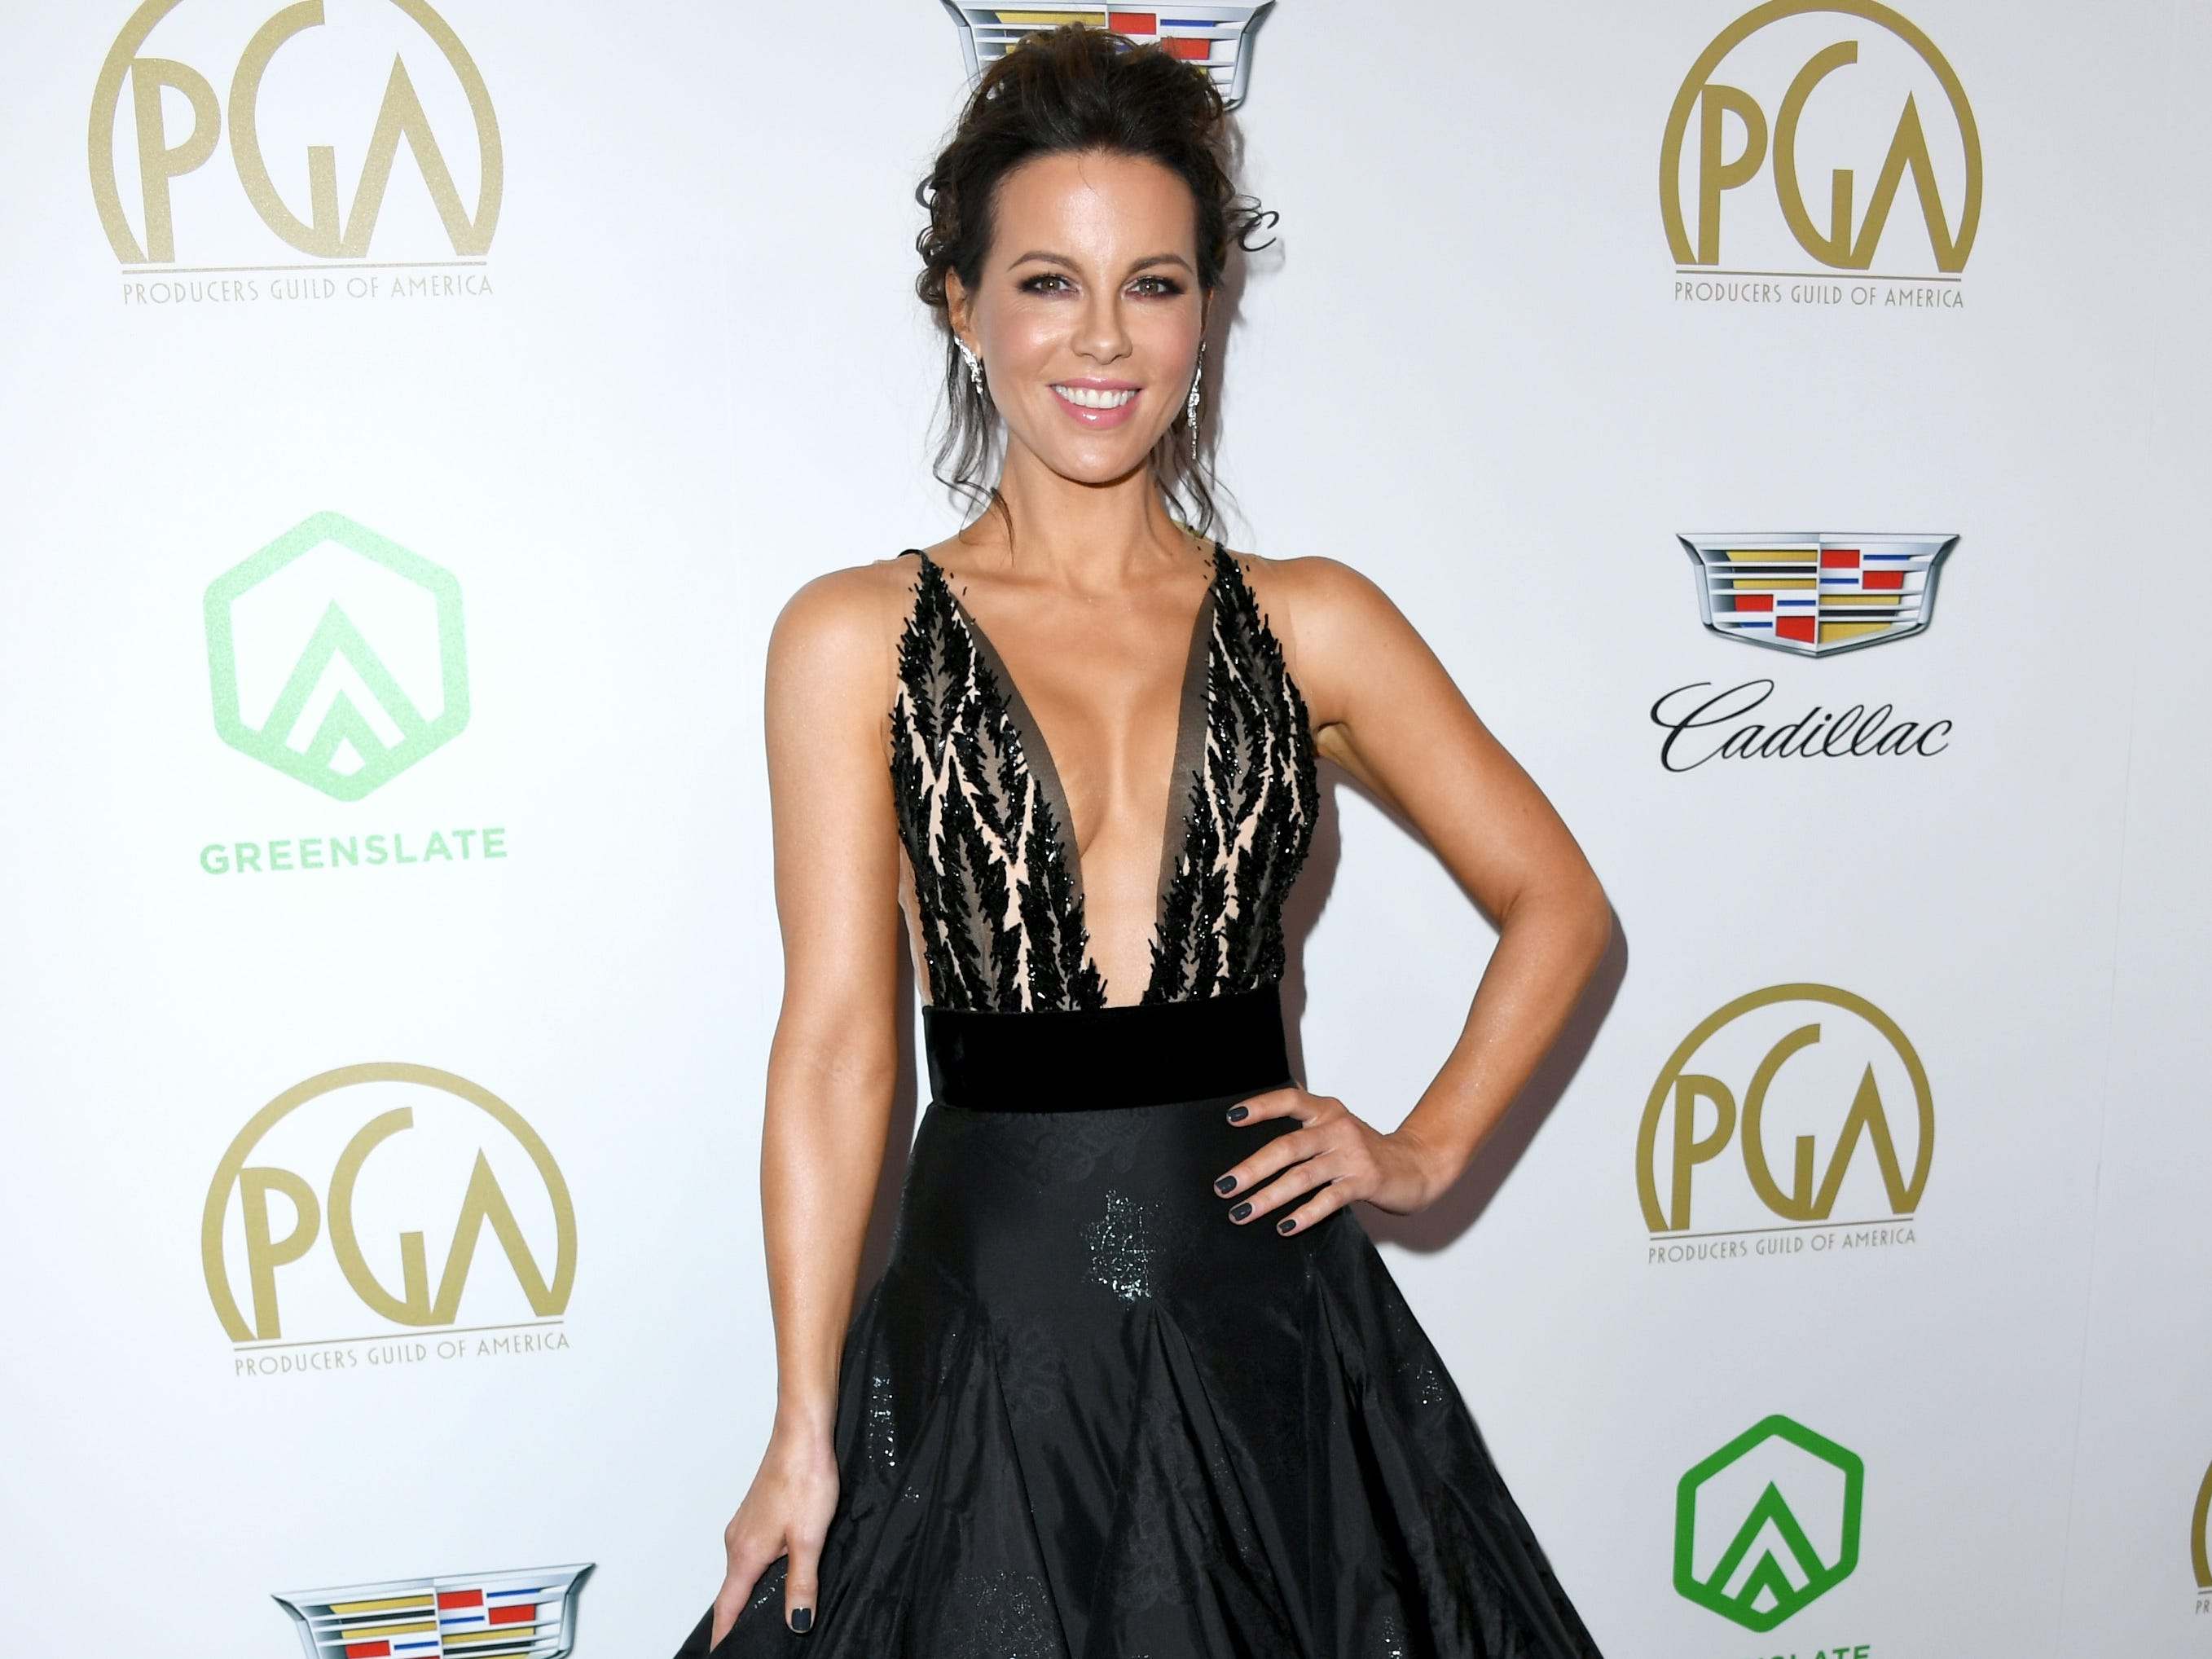 BEVERLY HILLS, CA - JANUARY 19:  Kate Beckinsale attends the 30th annual Producers Guild Awards at The Beverly Hilton Hotel on January 19, 2019 in Beverly Hills, California.  (Photo by Jon Kopaloff/FilmMagic) ORG XMIT: 775277375 ORIG FILE ID: 1085408886